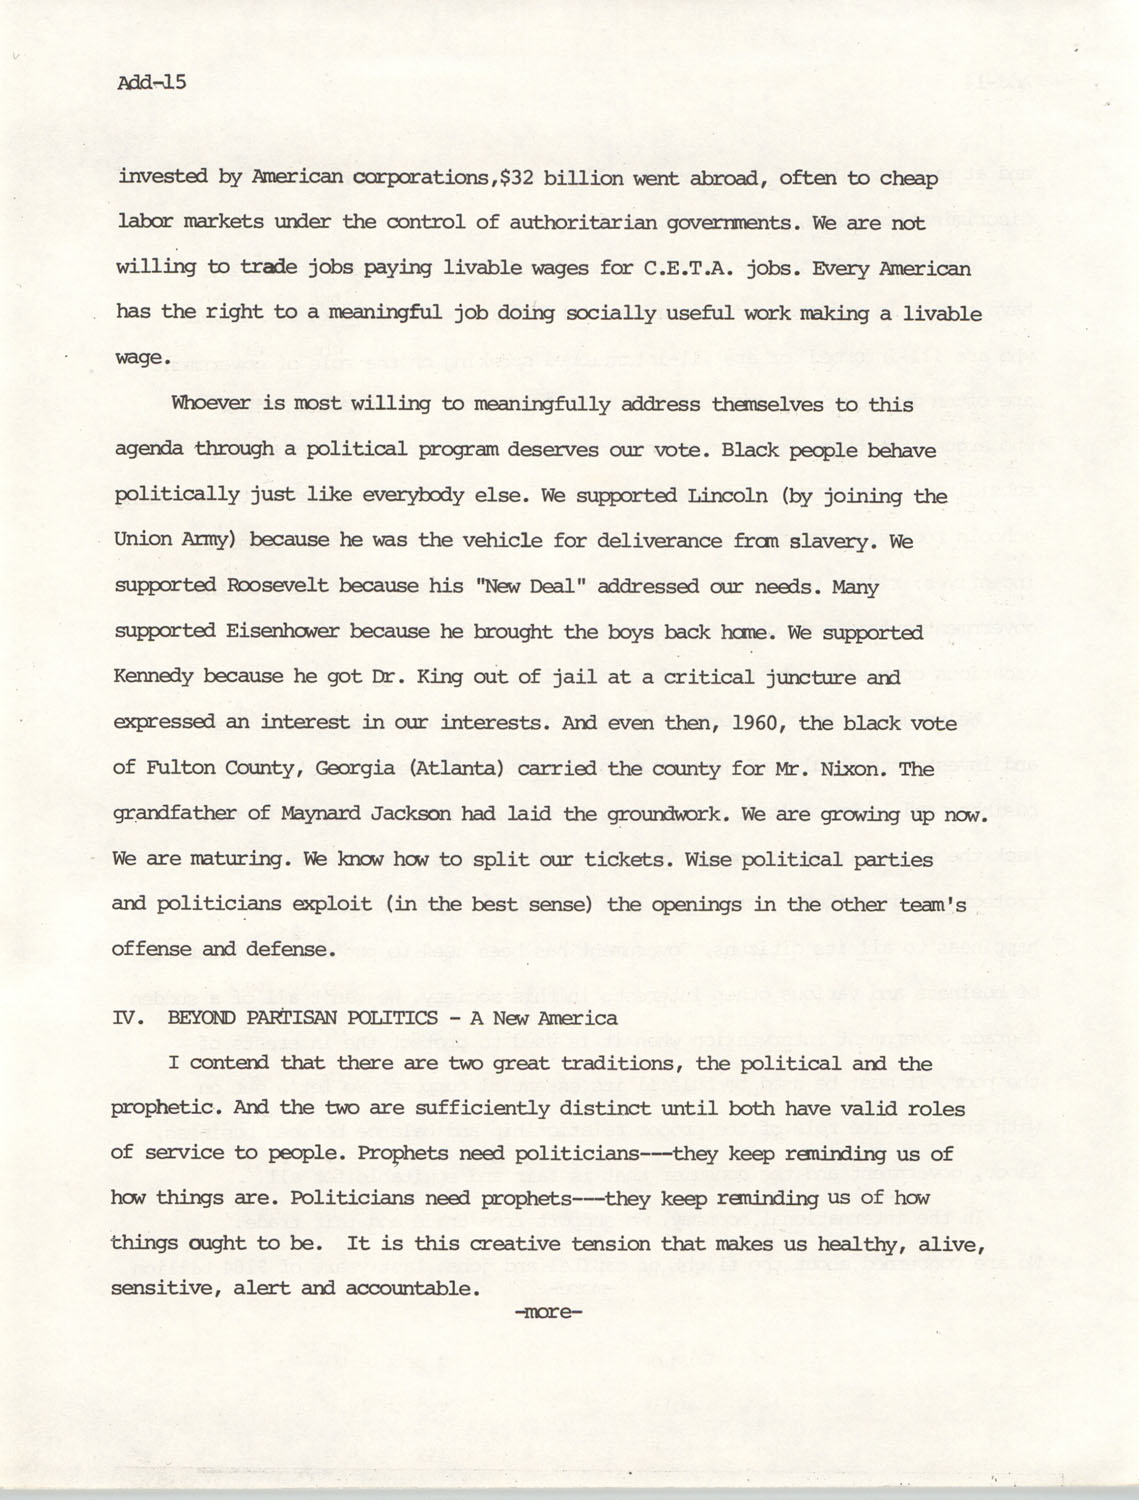 Speech Before the Republican National Committee, Page 15